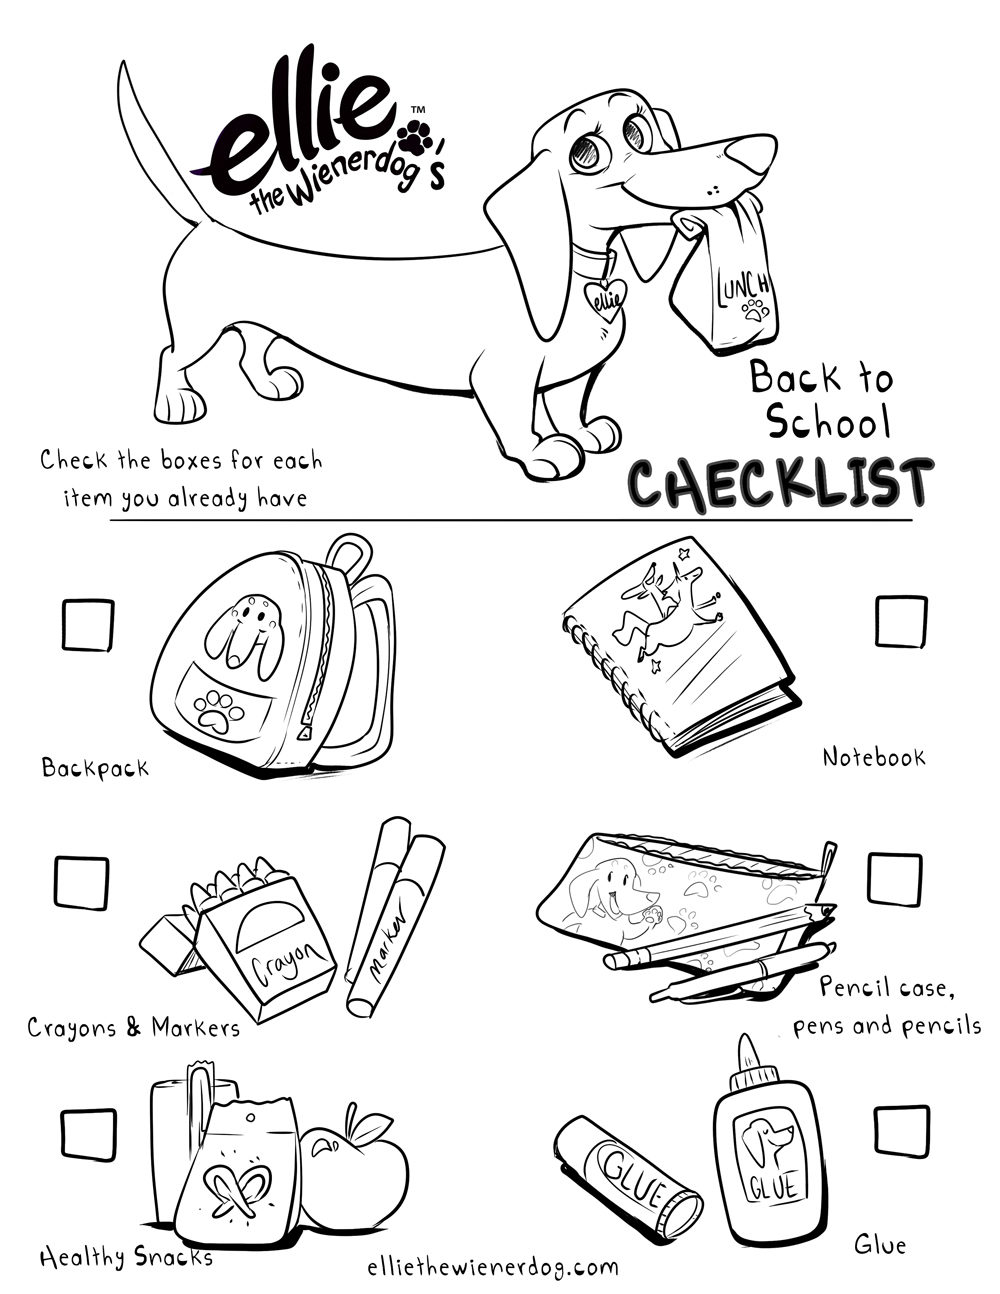 Checklist Drawing At Free For Personal Use Hvac 1000x1294 Ellie The Wienerdog Back To School Coloring Page